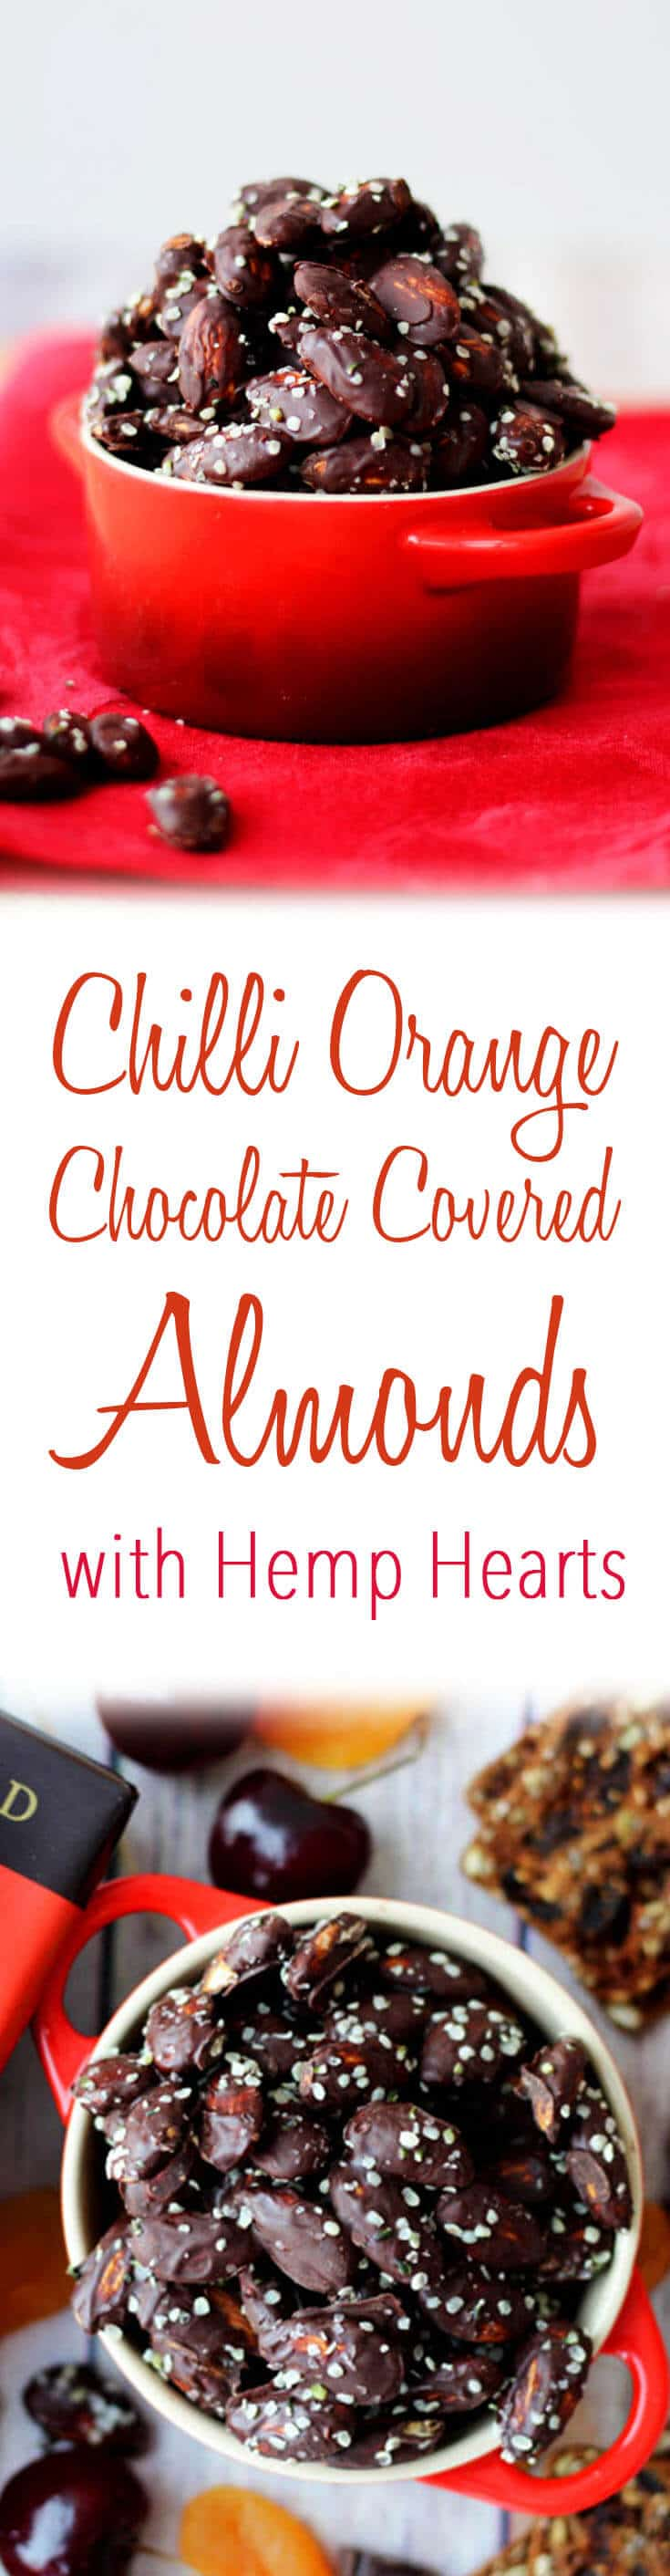 Here's how make my Healthy Chilli Orange Chocolate Covered Almonds with Hemp Hearts. #homemade #chocolatelover #almonds #hemphearts #easyrecipe #tastytreat #healthyrecipe